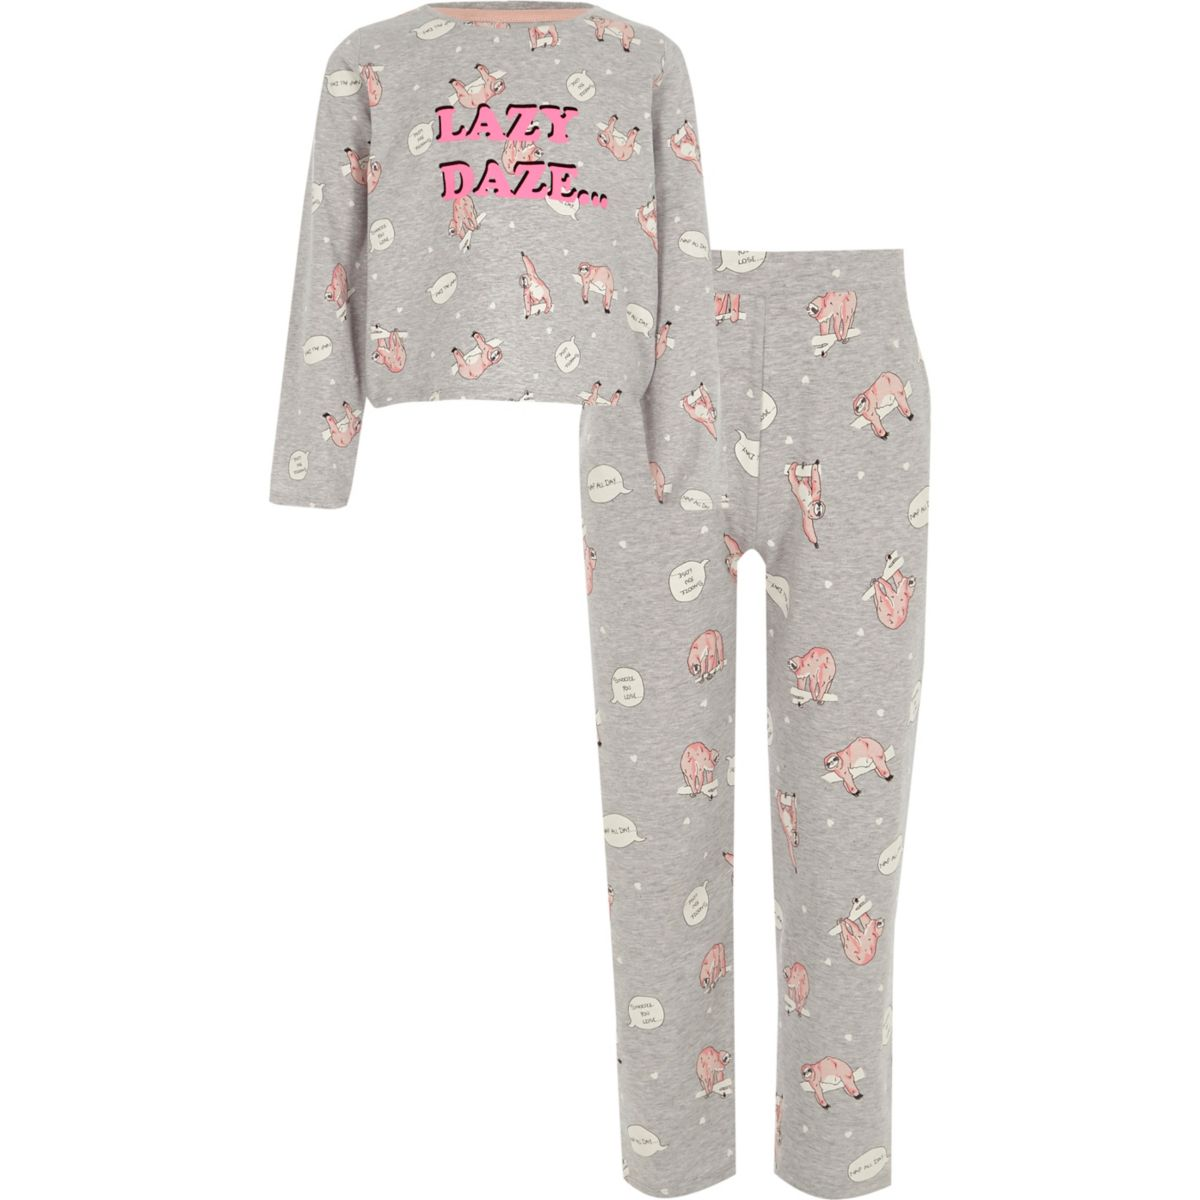 Girls grey 'lazy' sloth print pyjama set